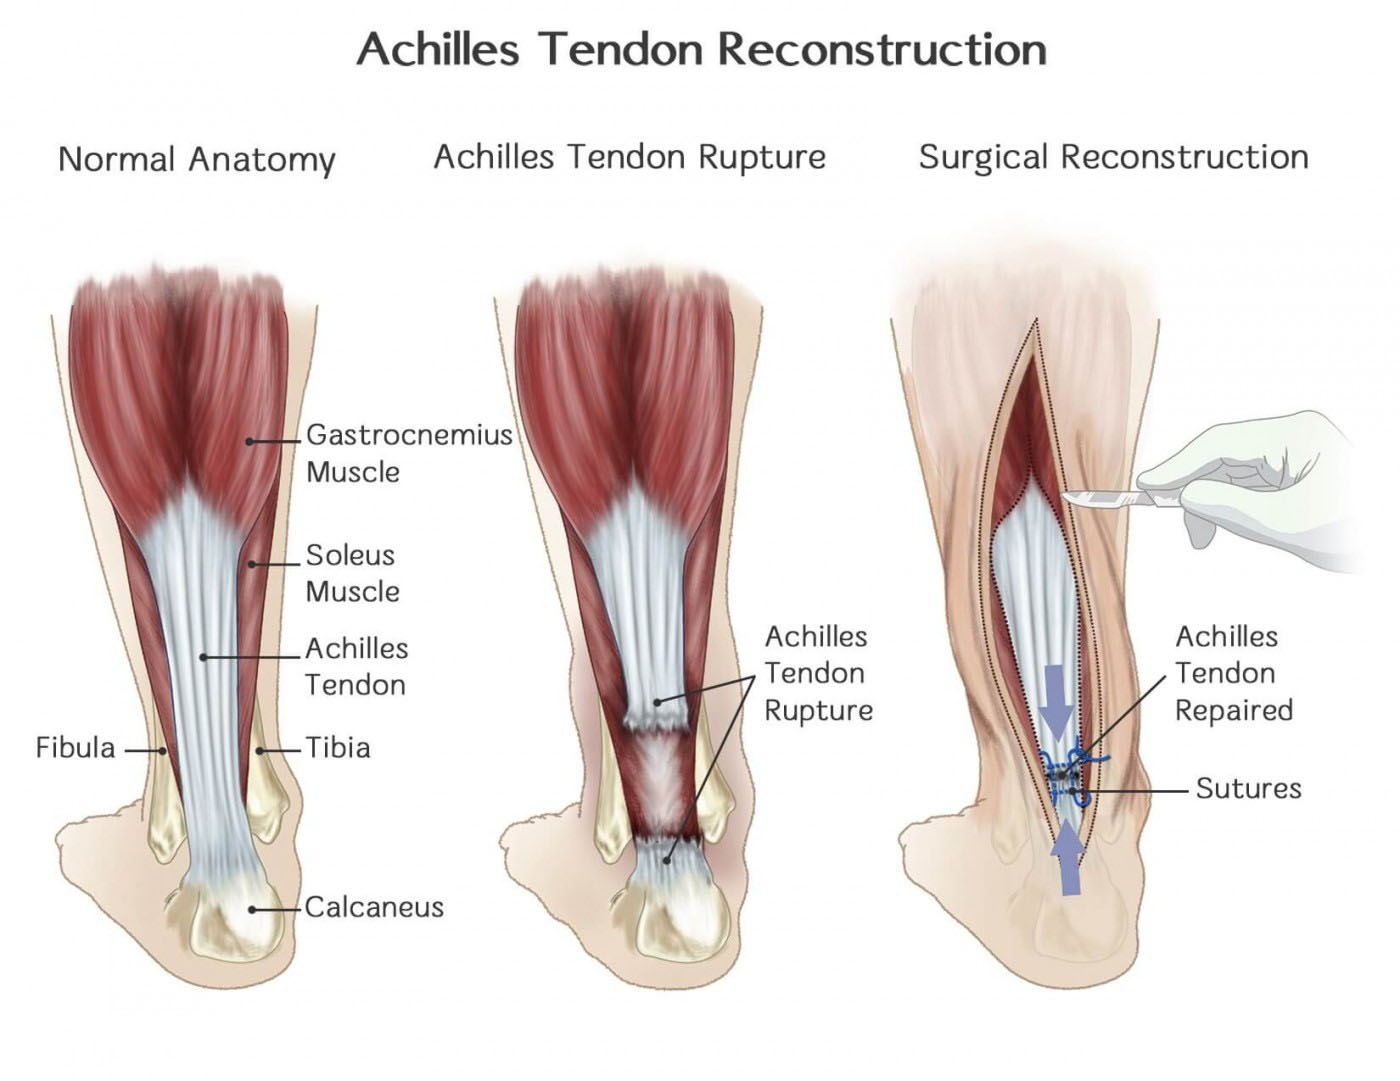 Achilles tendon rupture | Symptoms of the Achilles tendon rupture ...